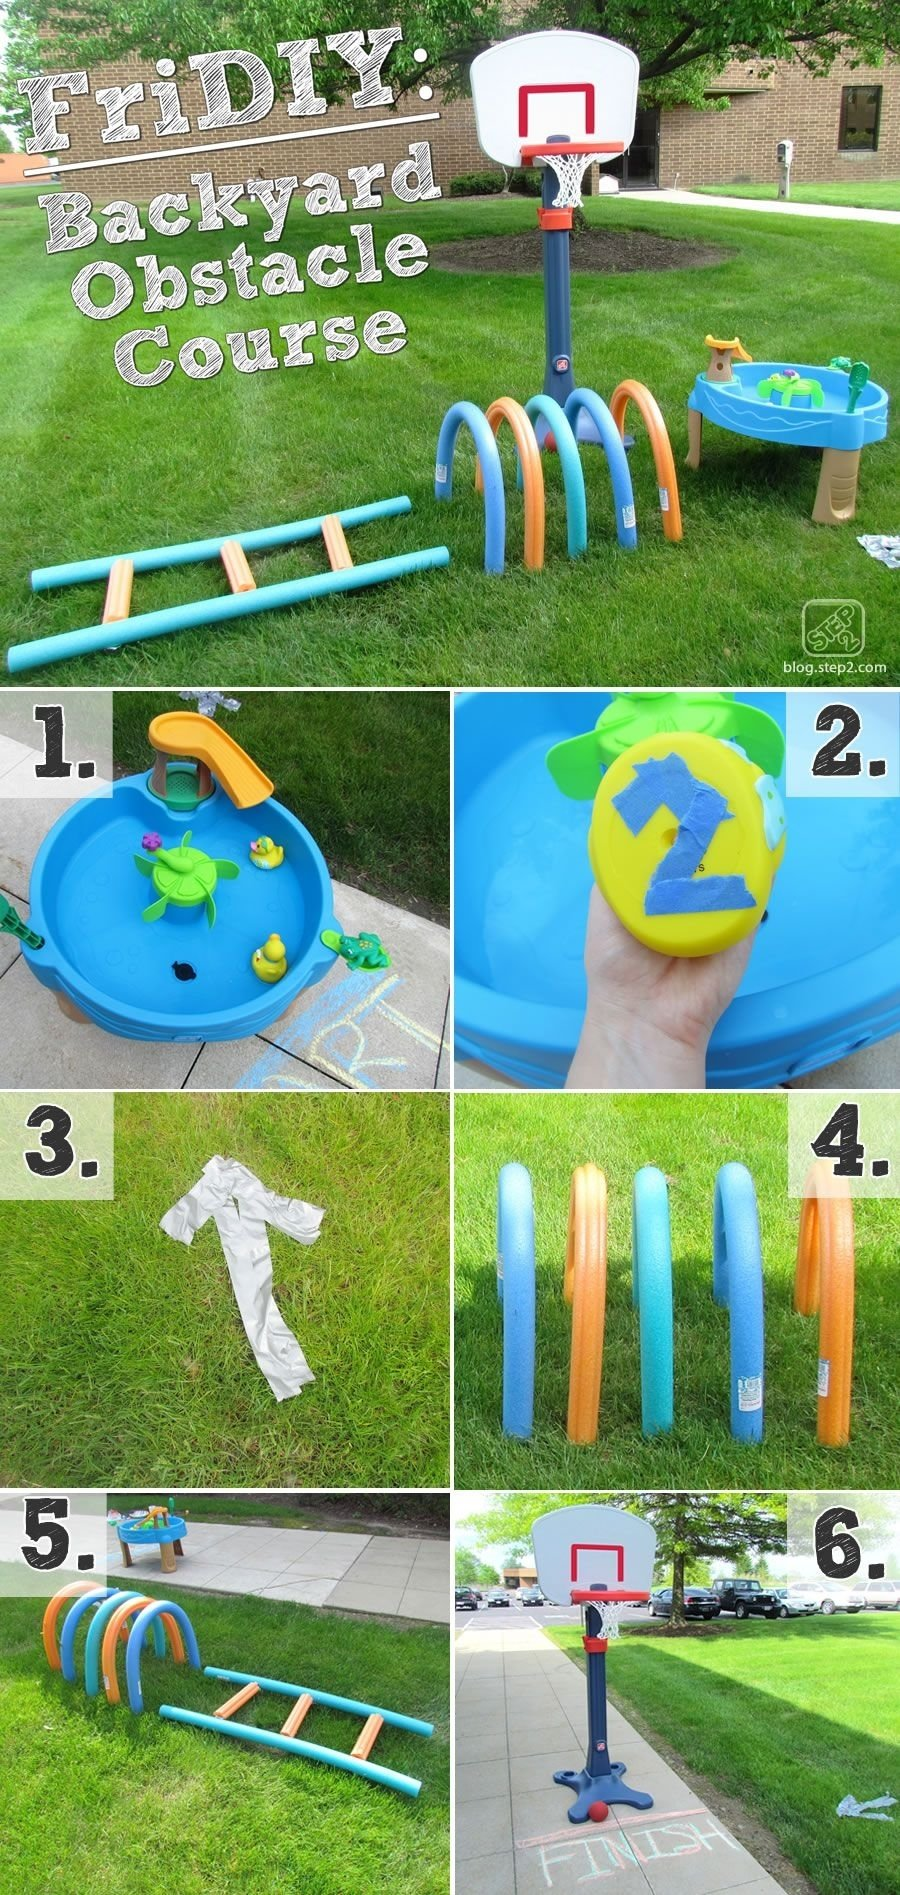 10 Fantastic Fun Obstacle Course Ideas For Adults backyard obstacle course backyard obstacle course obstacle course